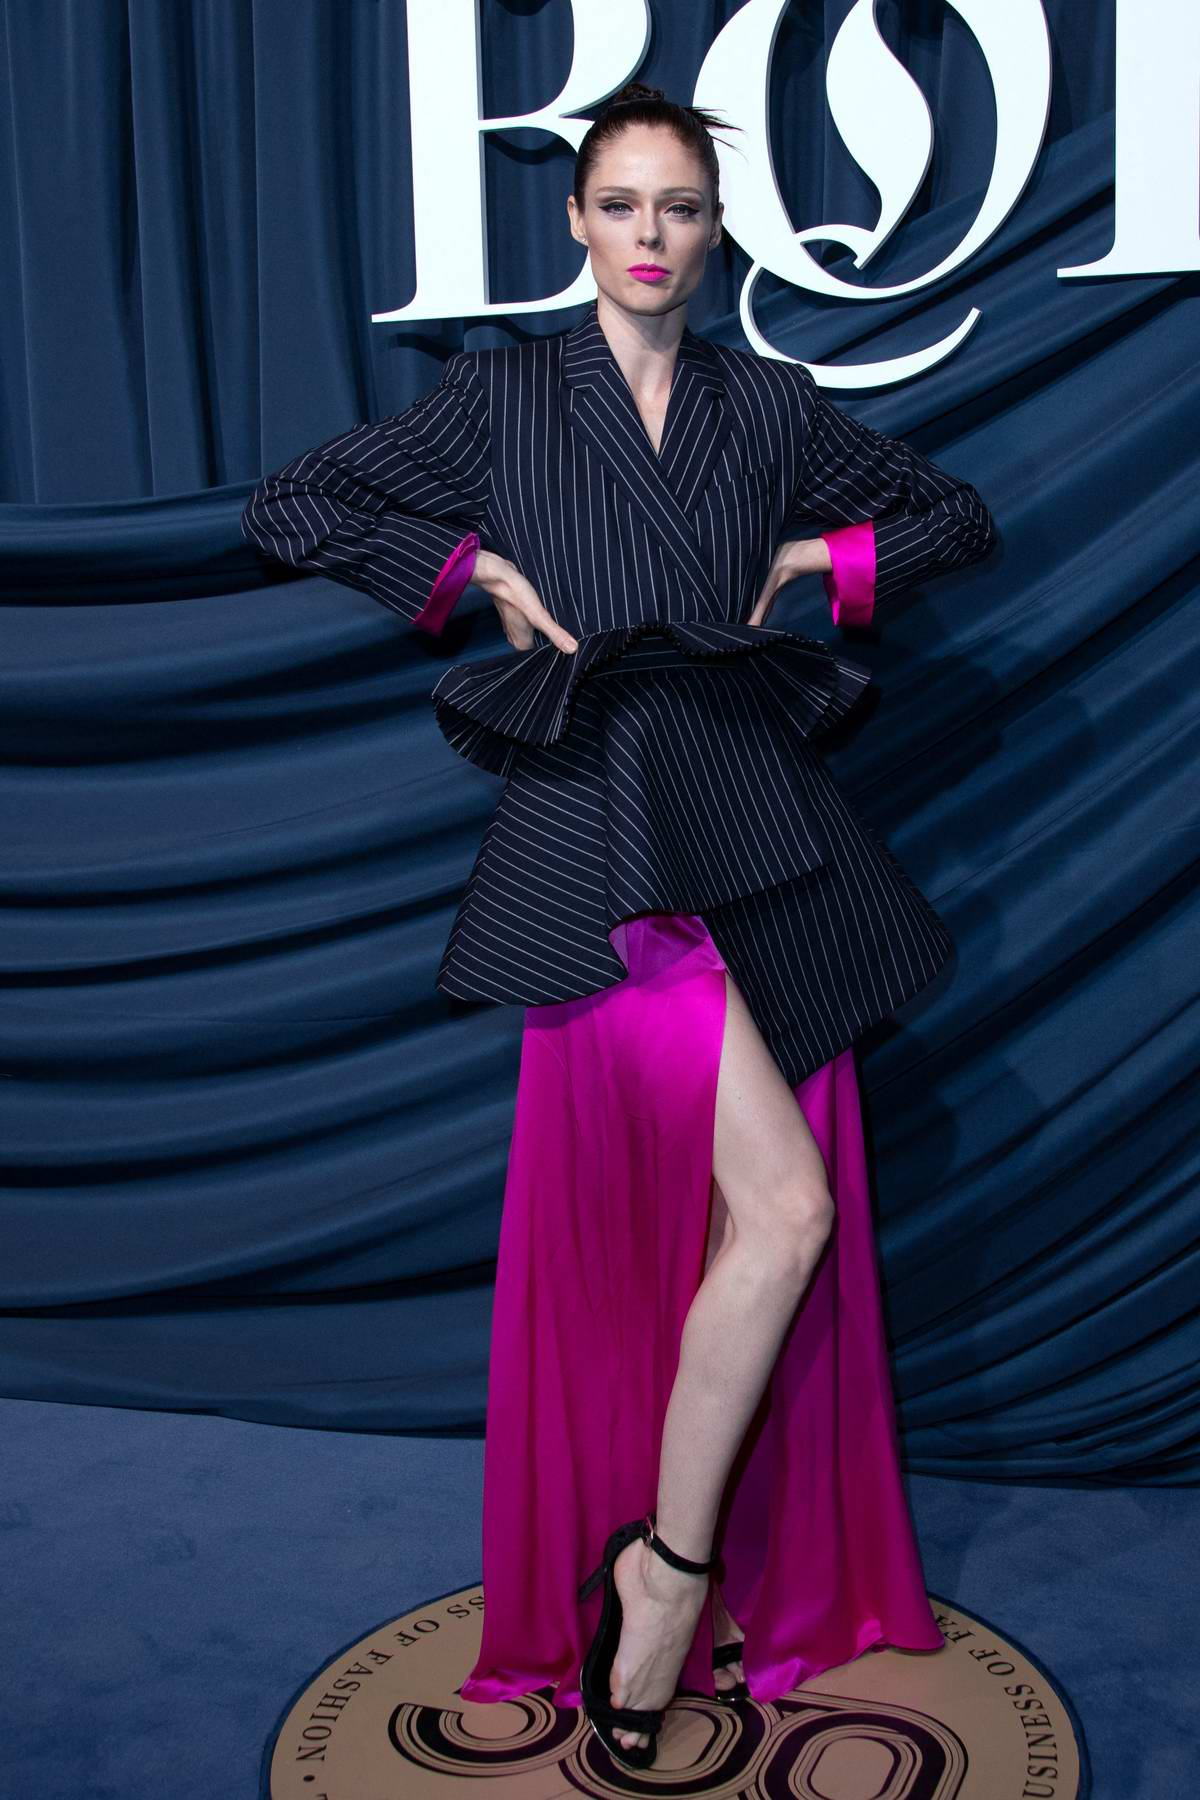 Coco Rocha attends the BoF 500 Gala during Paris Fashion Week SS 2020 in Paris, France